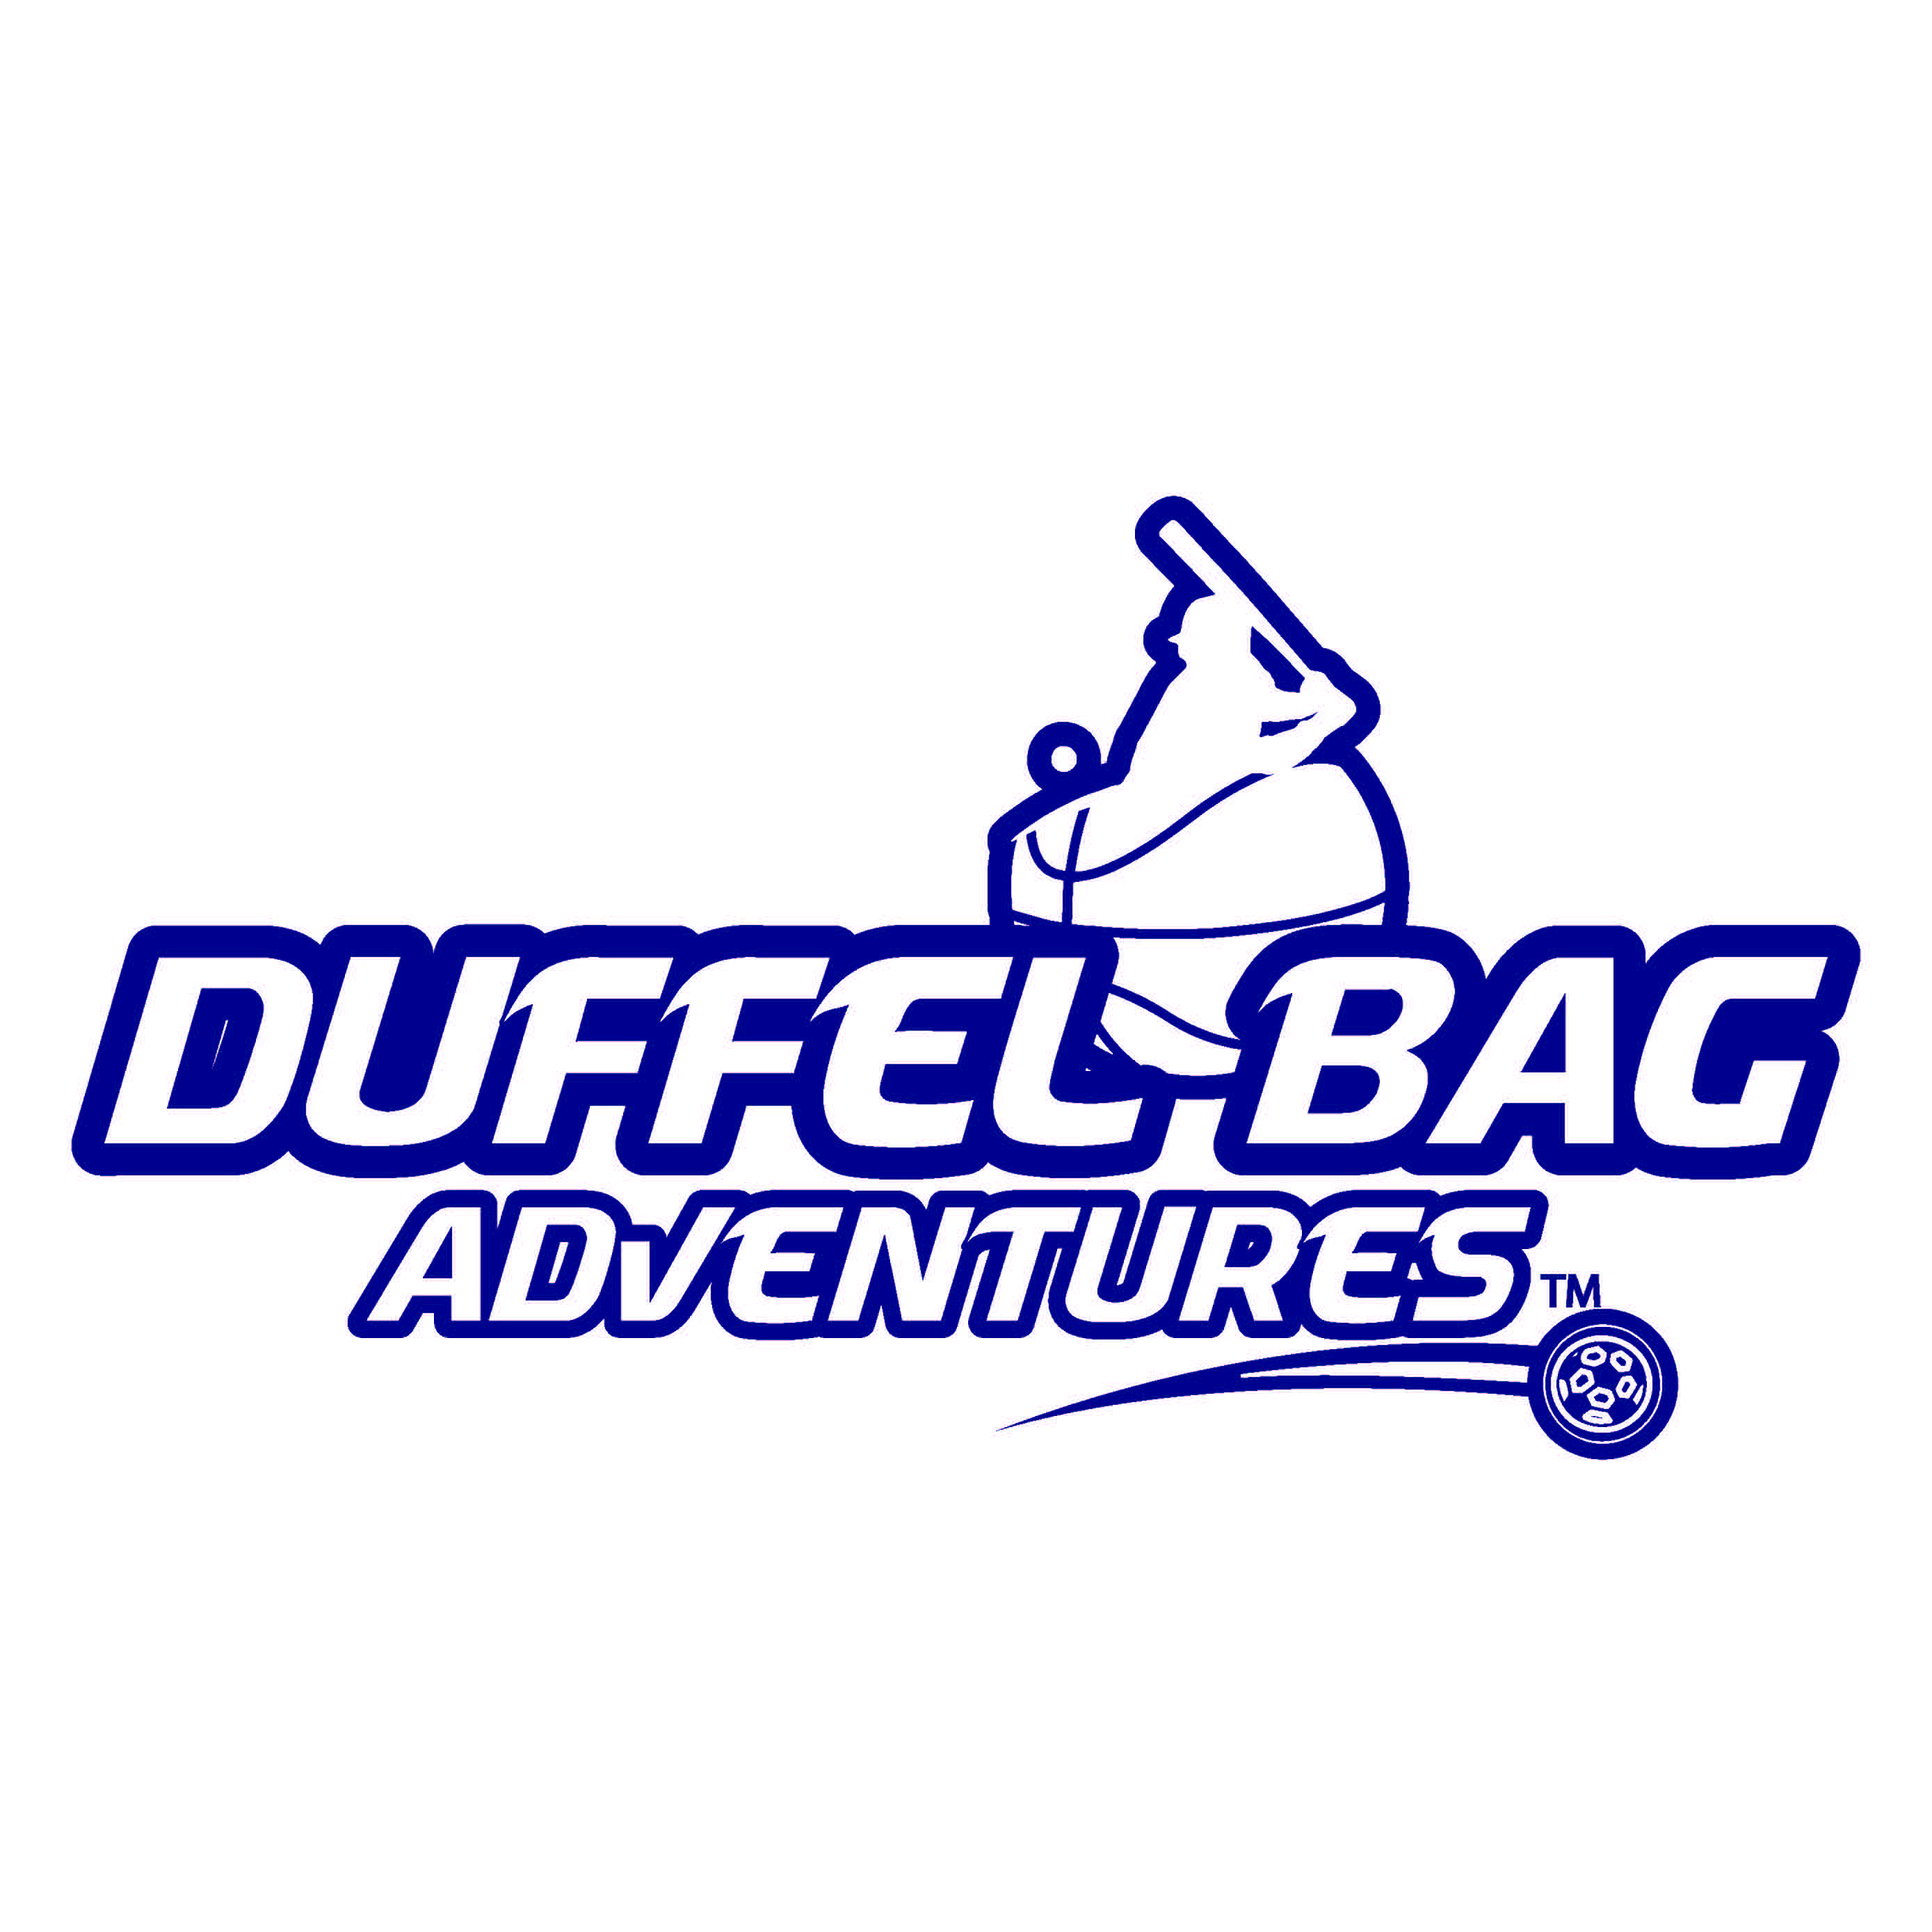 Duffel Bag Adventures